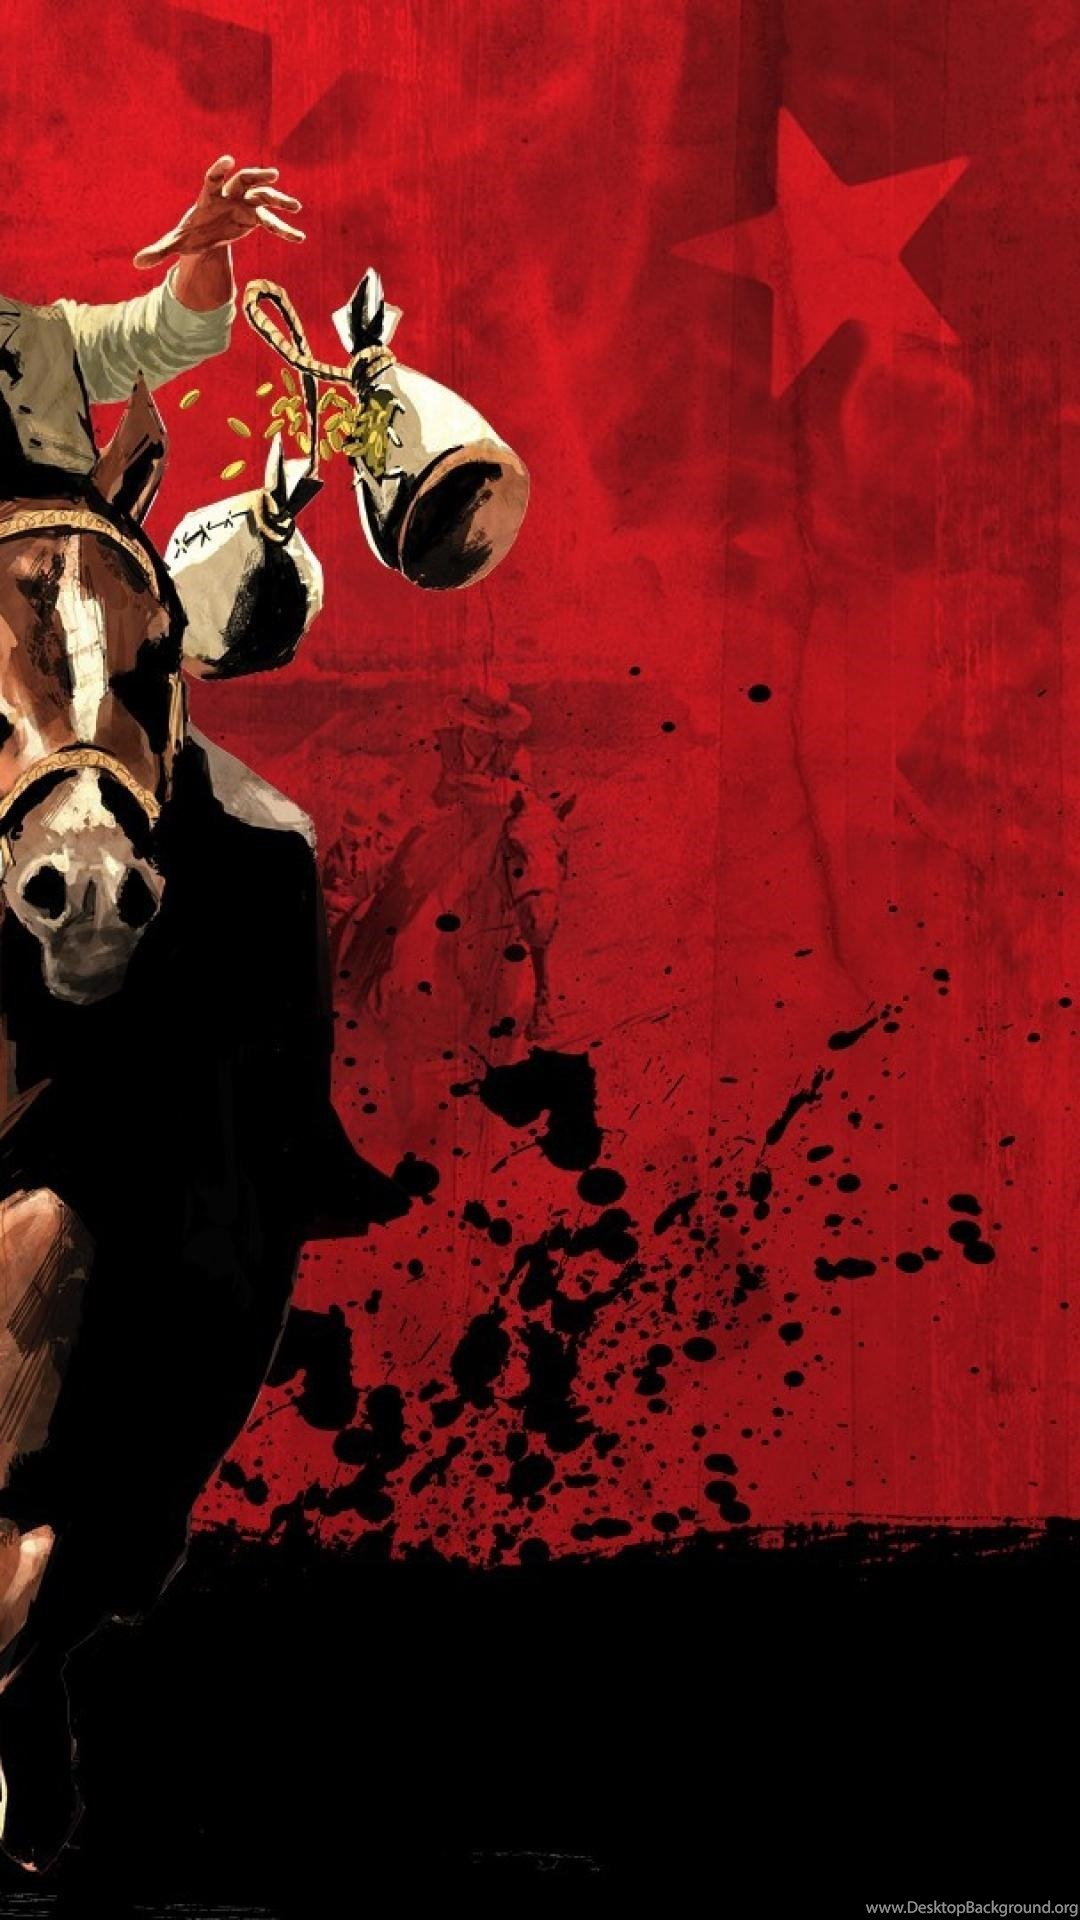 Auto Horses Red Dead Redemption Rockstar Iii Wallpapers Desktop